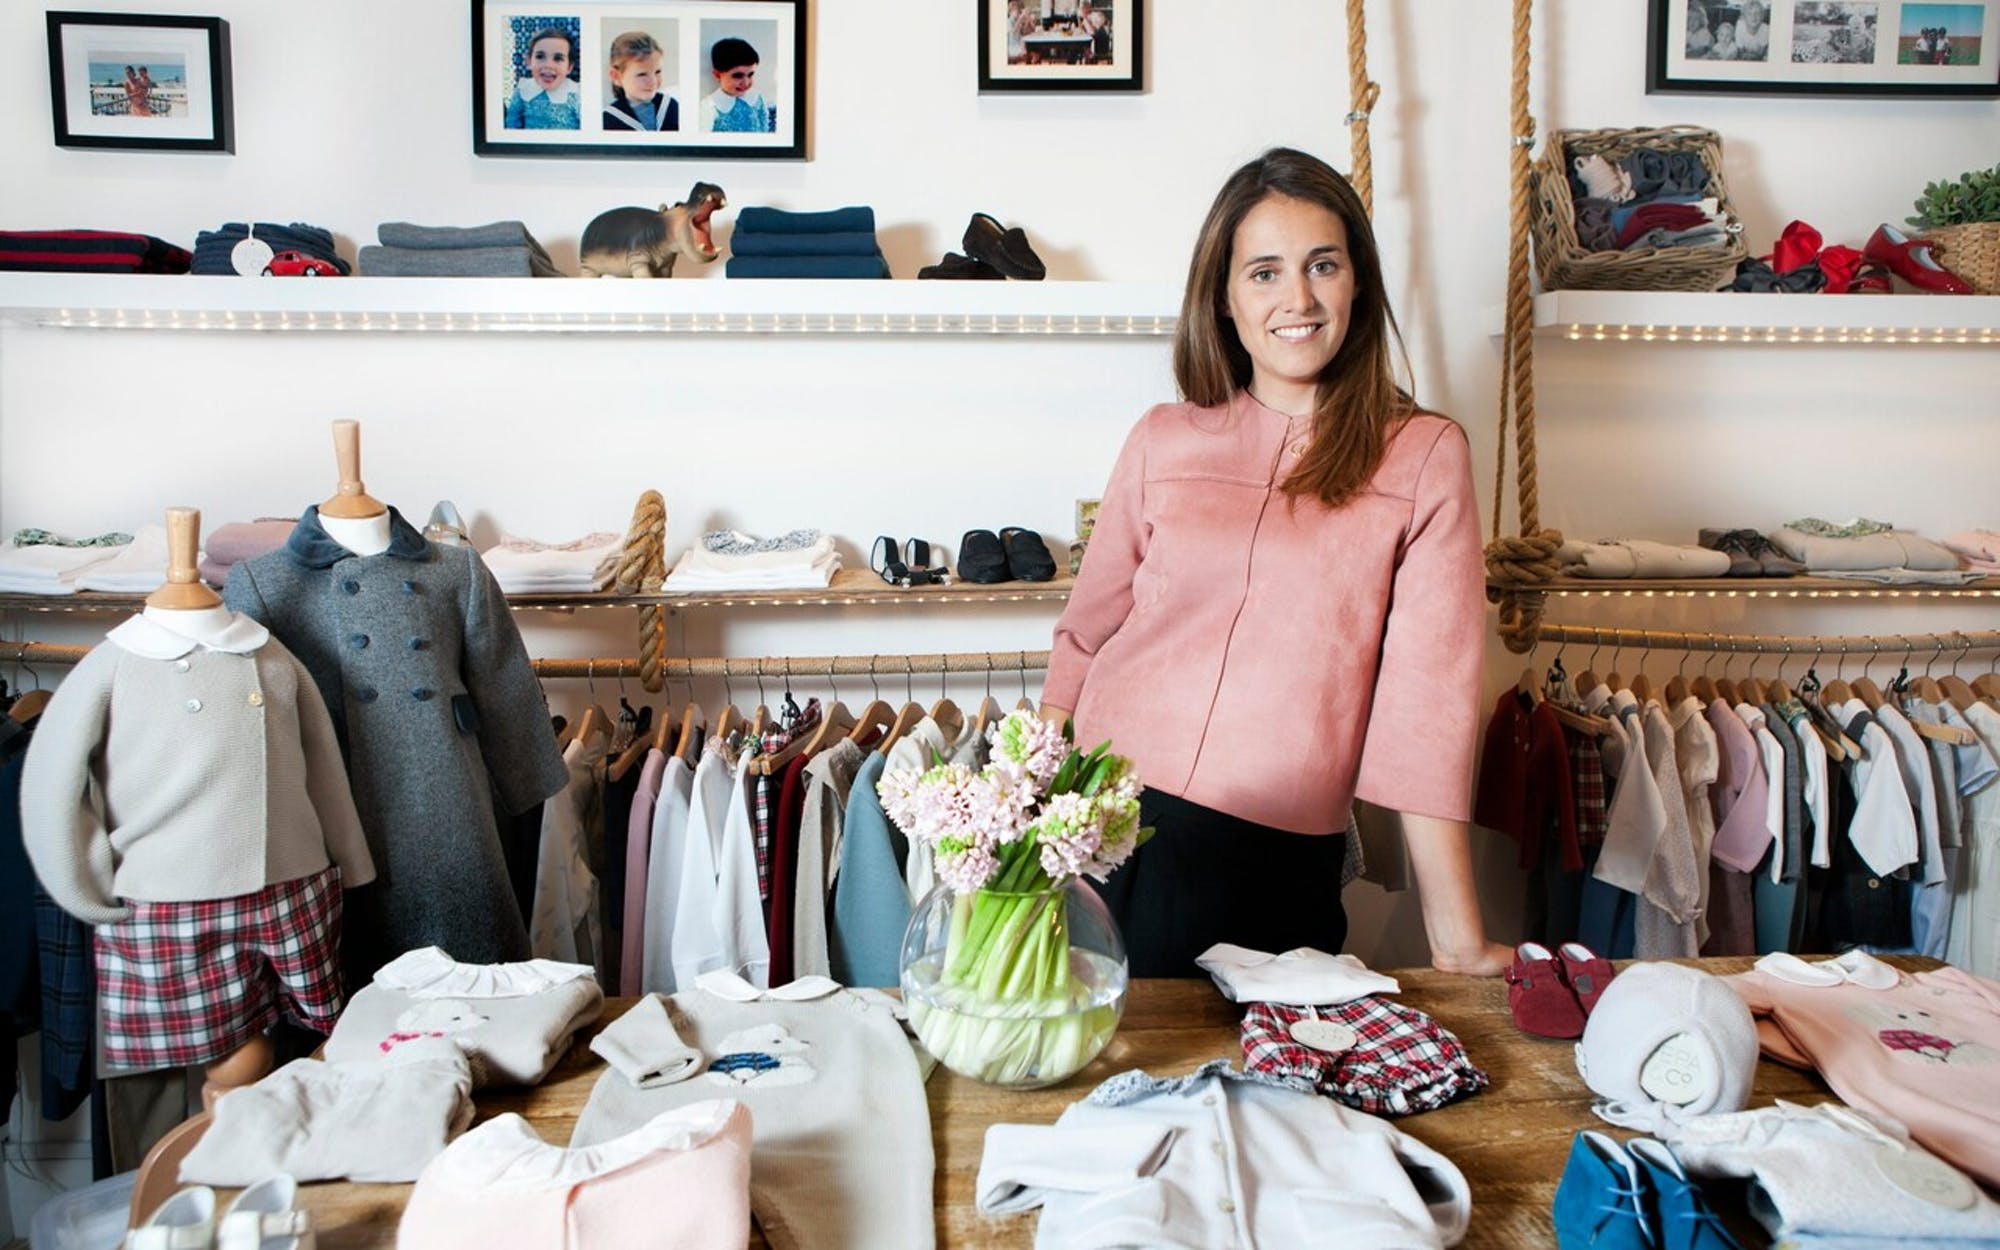 Five Minutes with the Founder  Pepa Gonzalez, Founder, Pepa & Co.